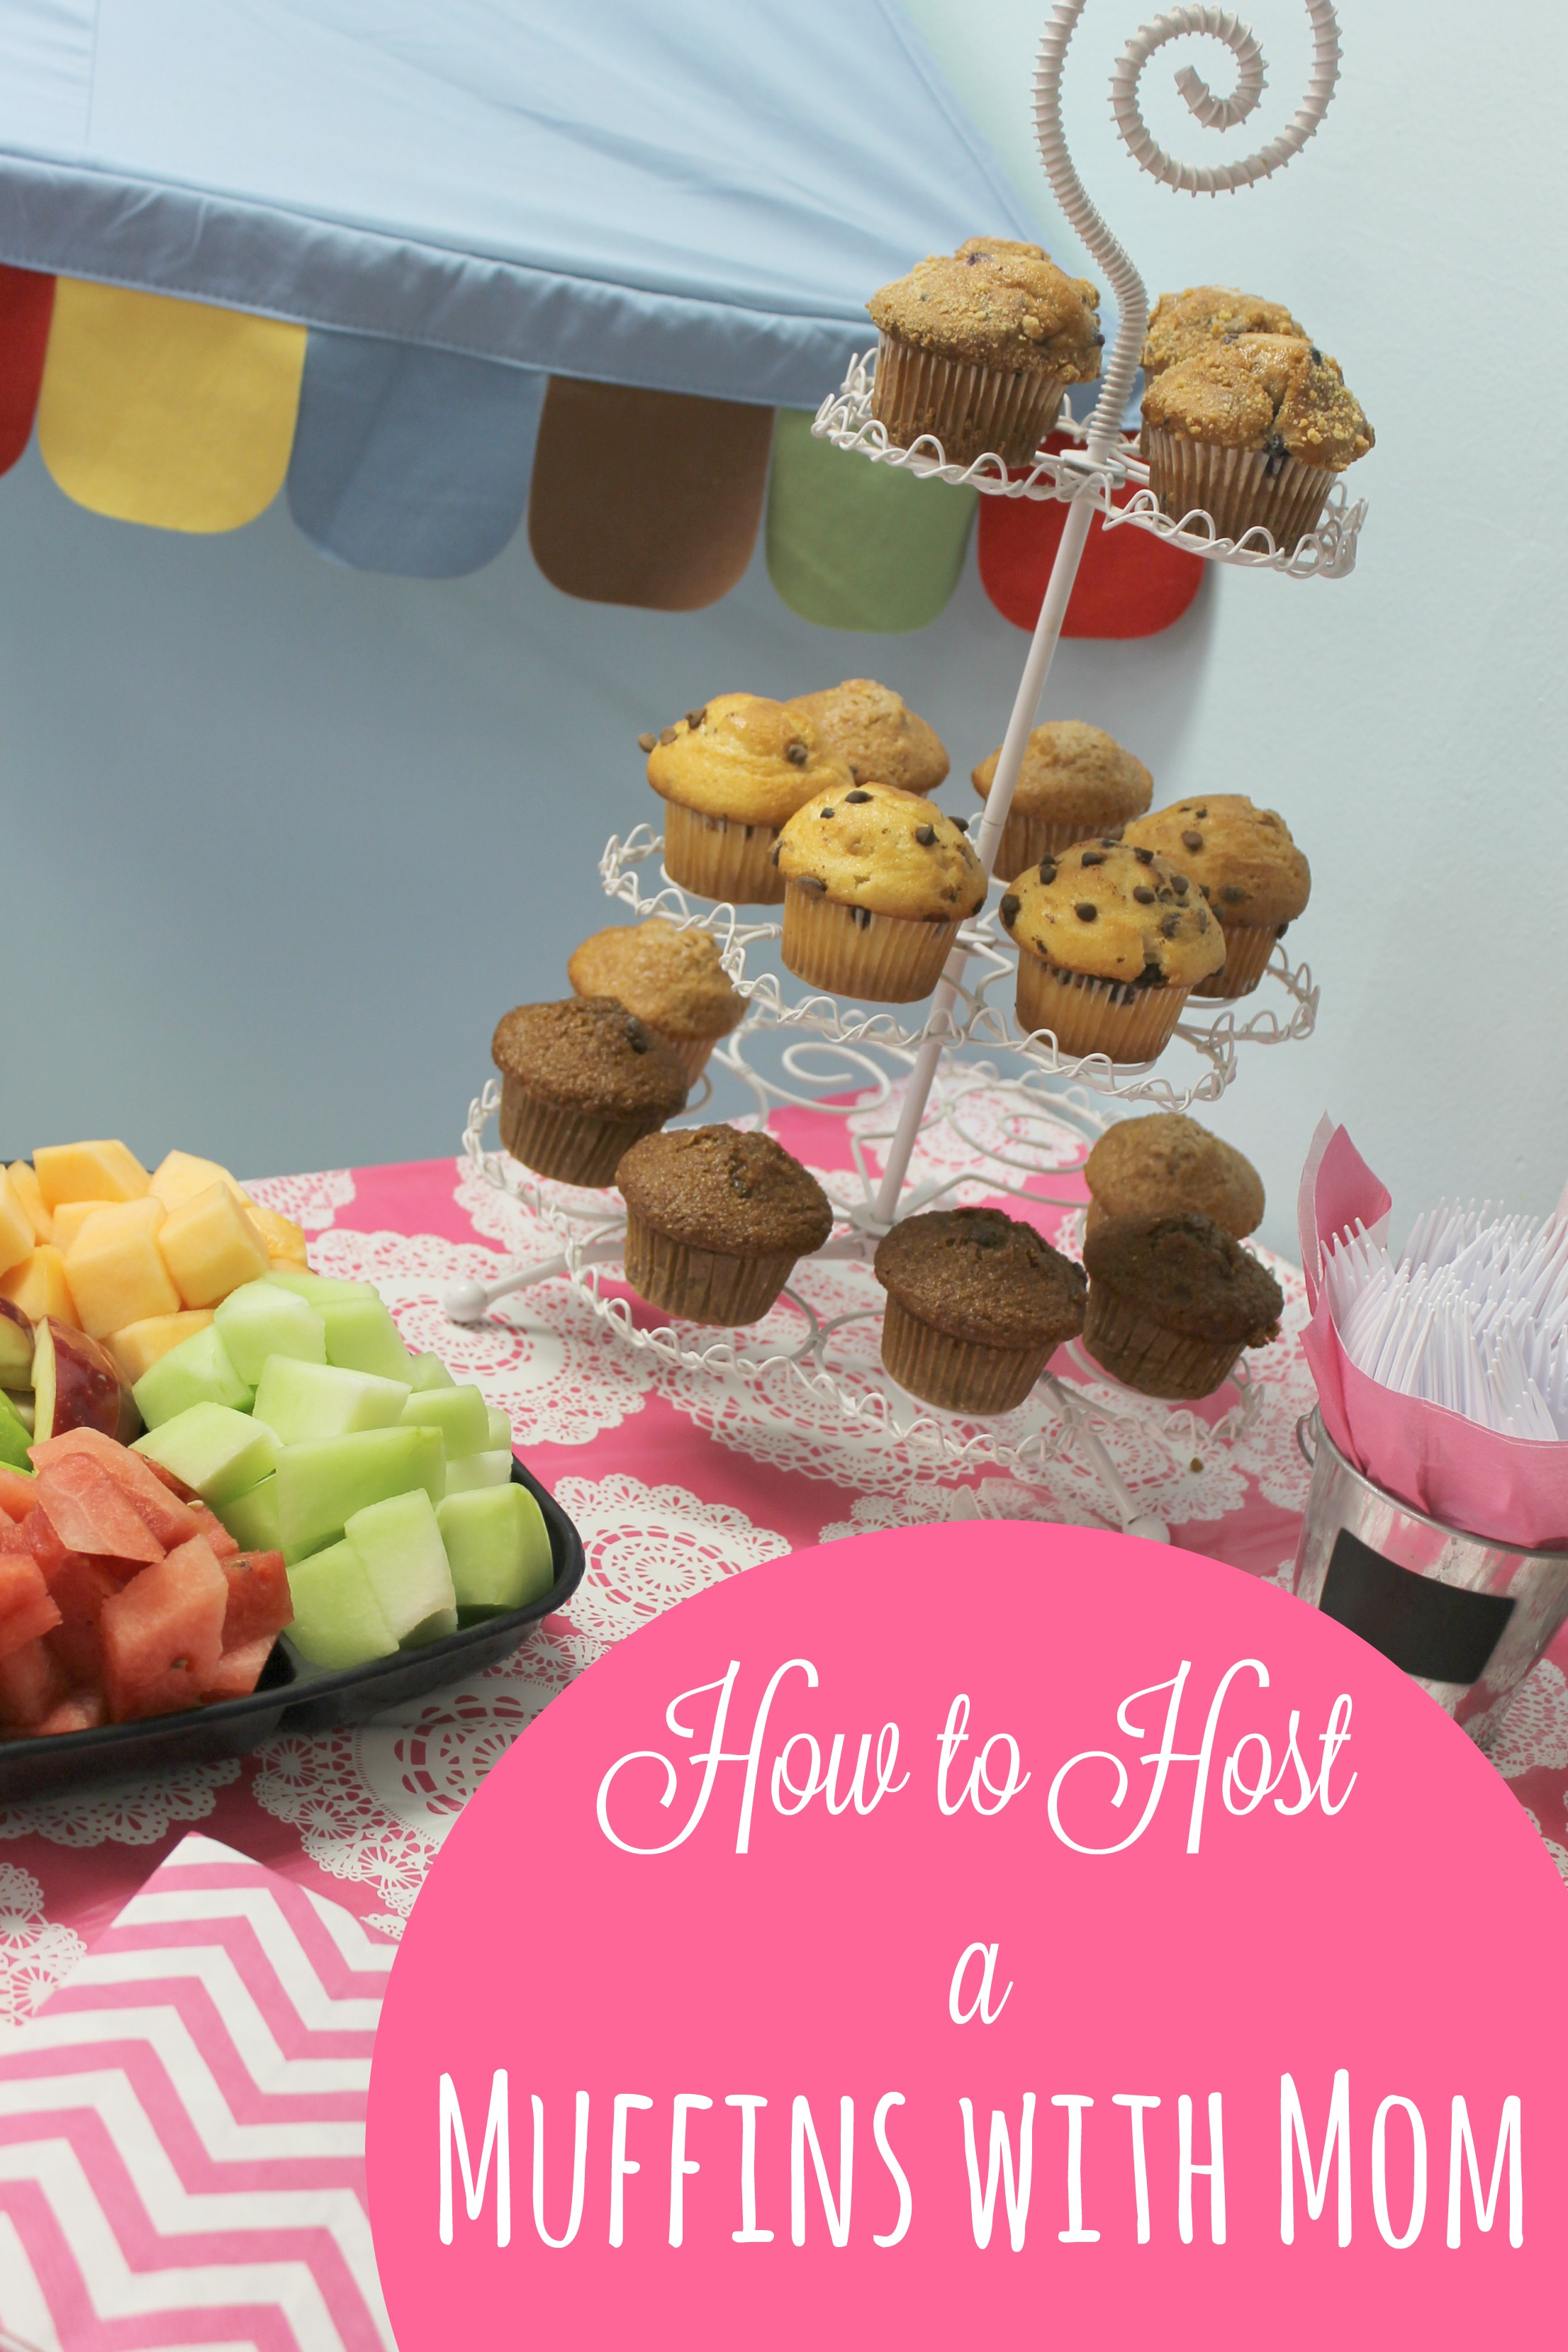 Classroom Ideas For Mothers Day ~ How to host a muffins with mom in your preschool classroom